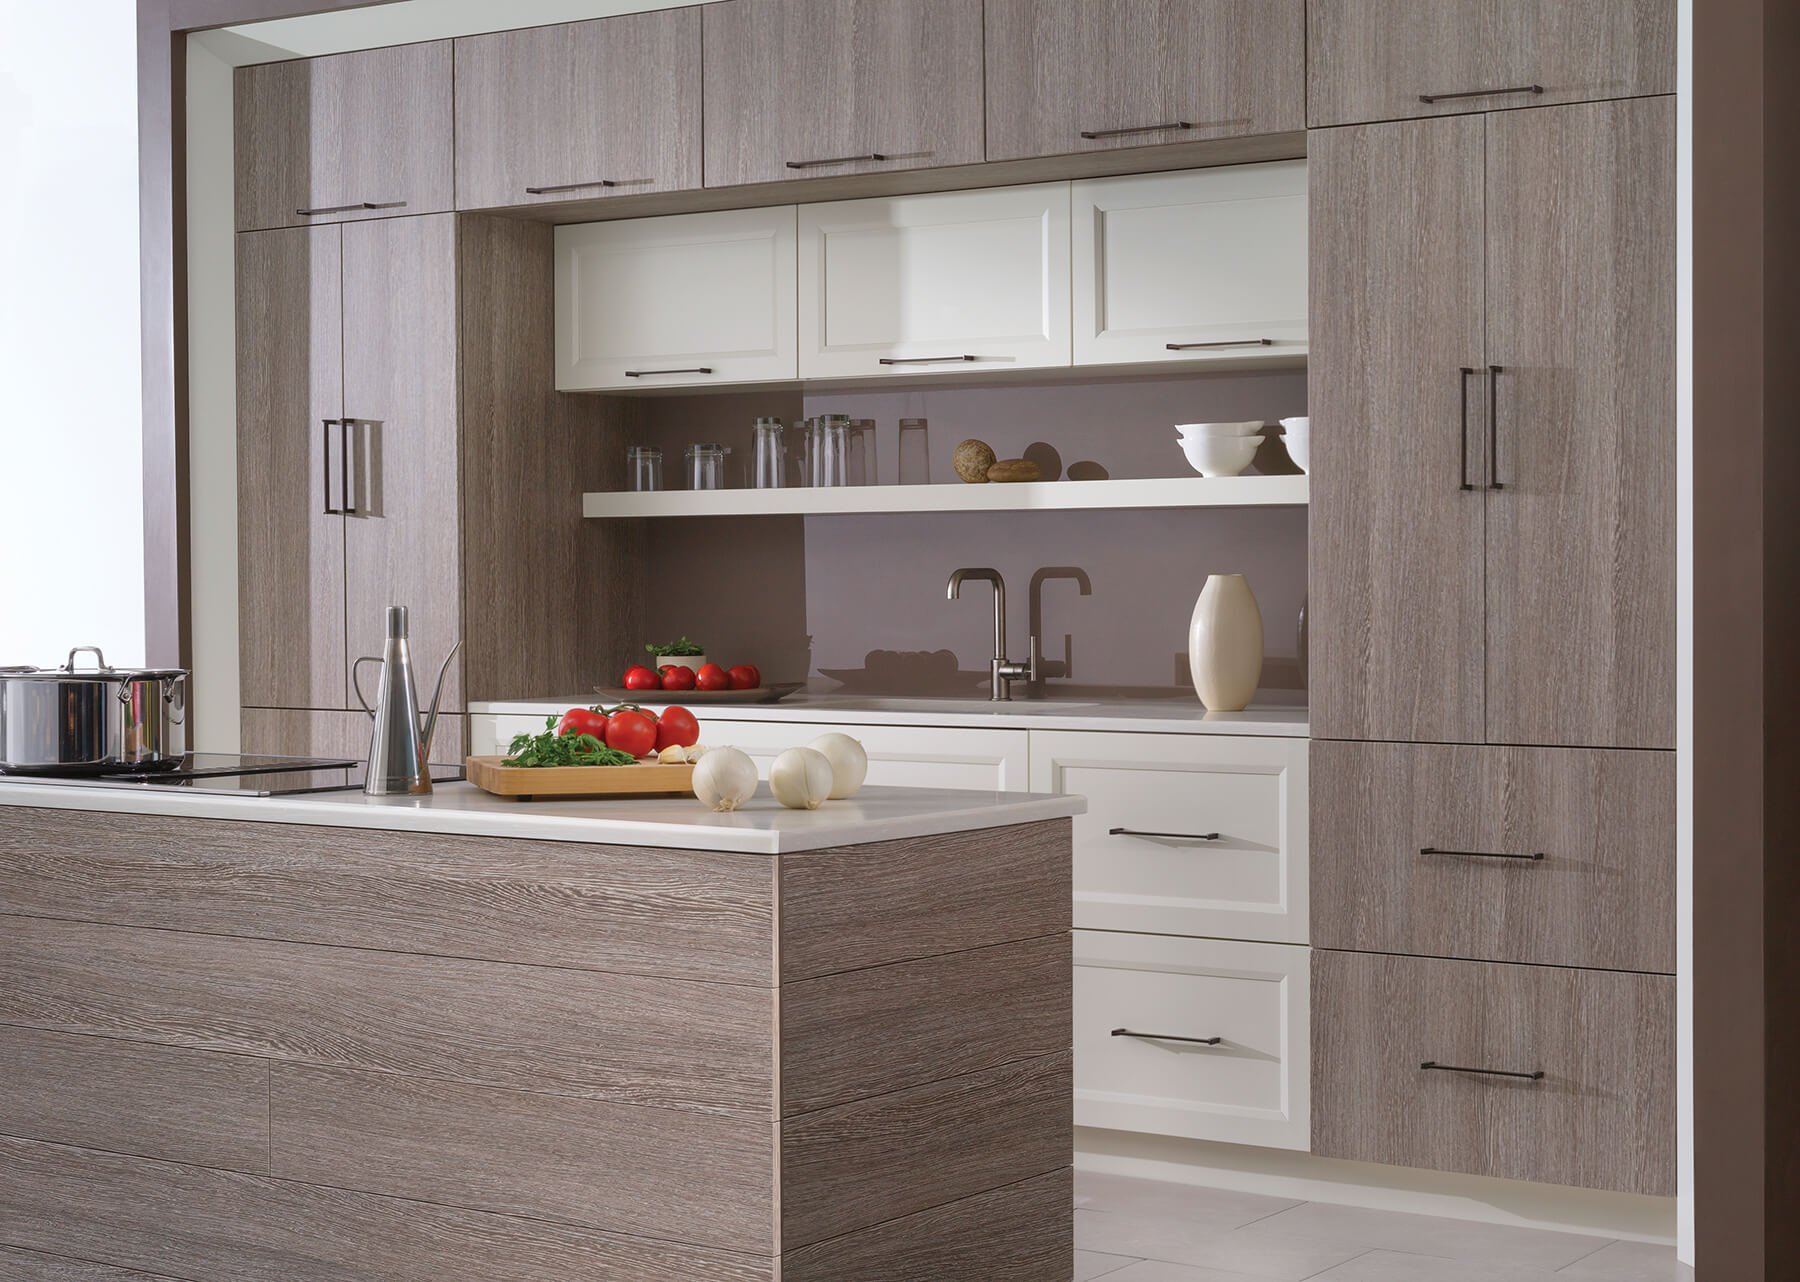 kitchen cabinets com and dining room chairs laminate countertops have advantages